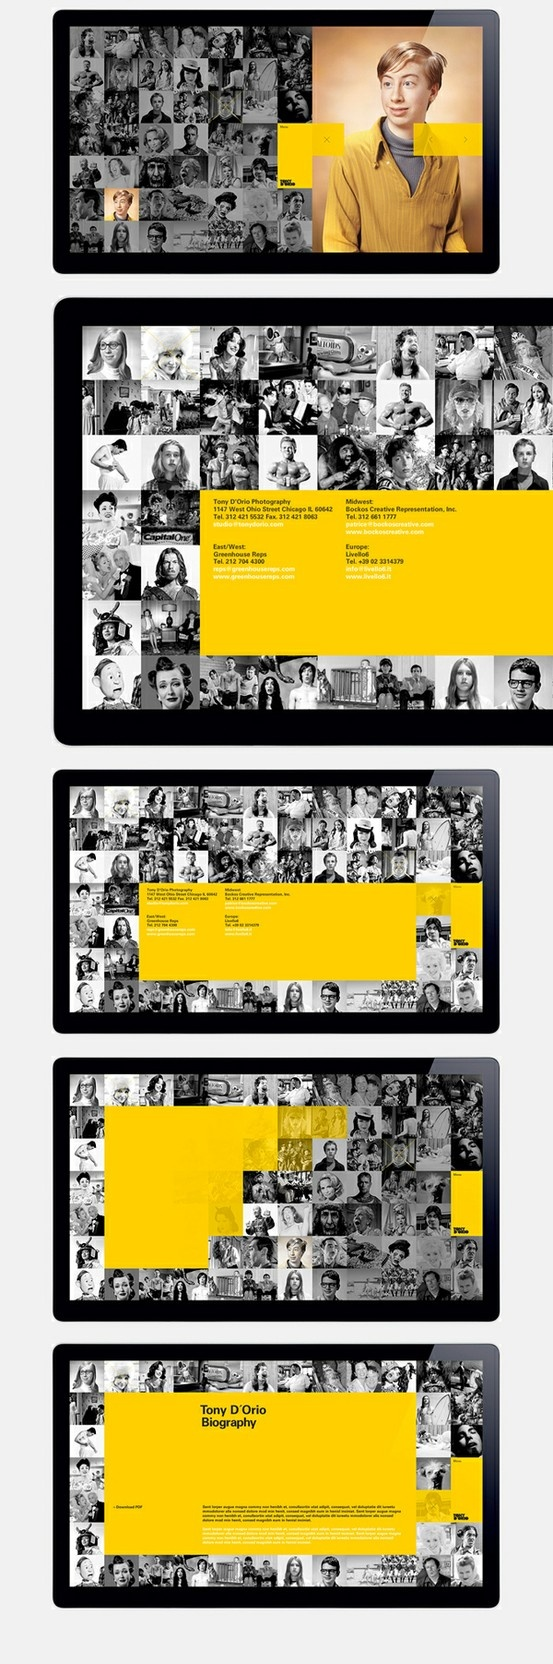 Mosaic Story Telling. If you like UX, design, or design